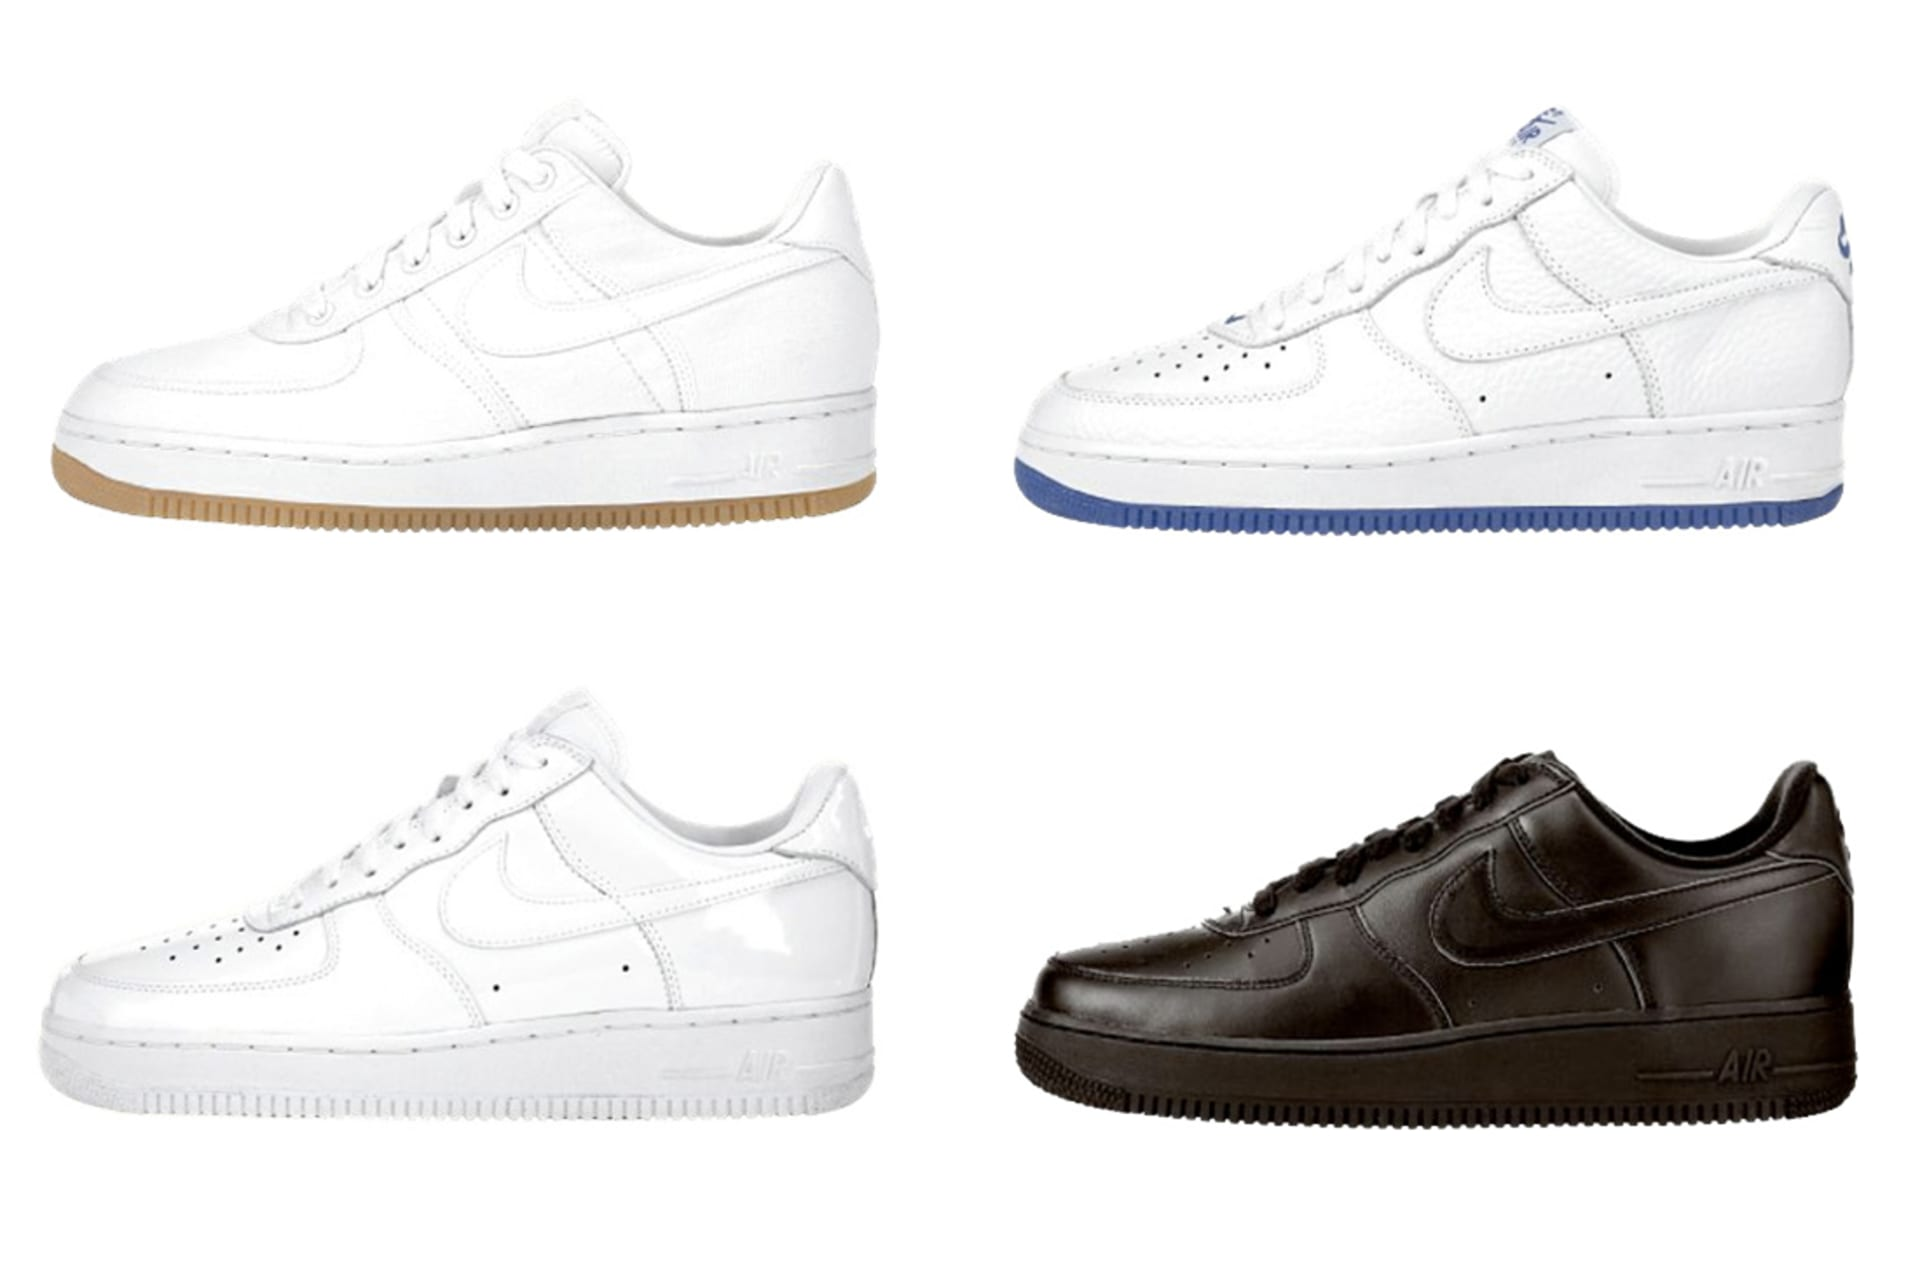 new arrival 29f38 98ea6 1996 Nike Air Force 1